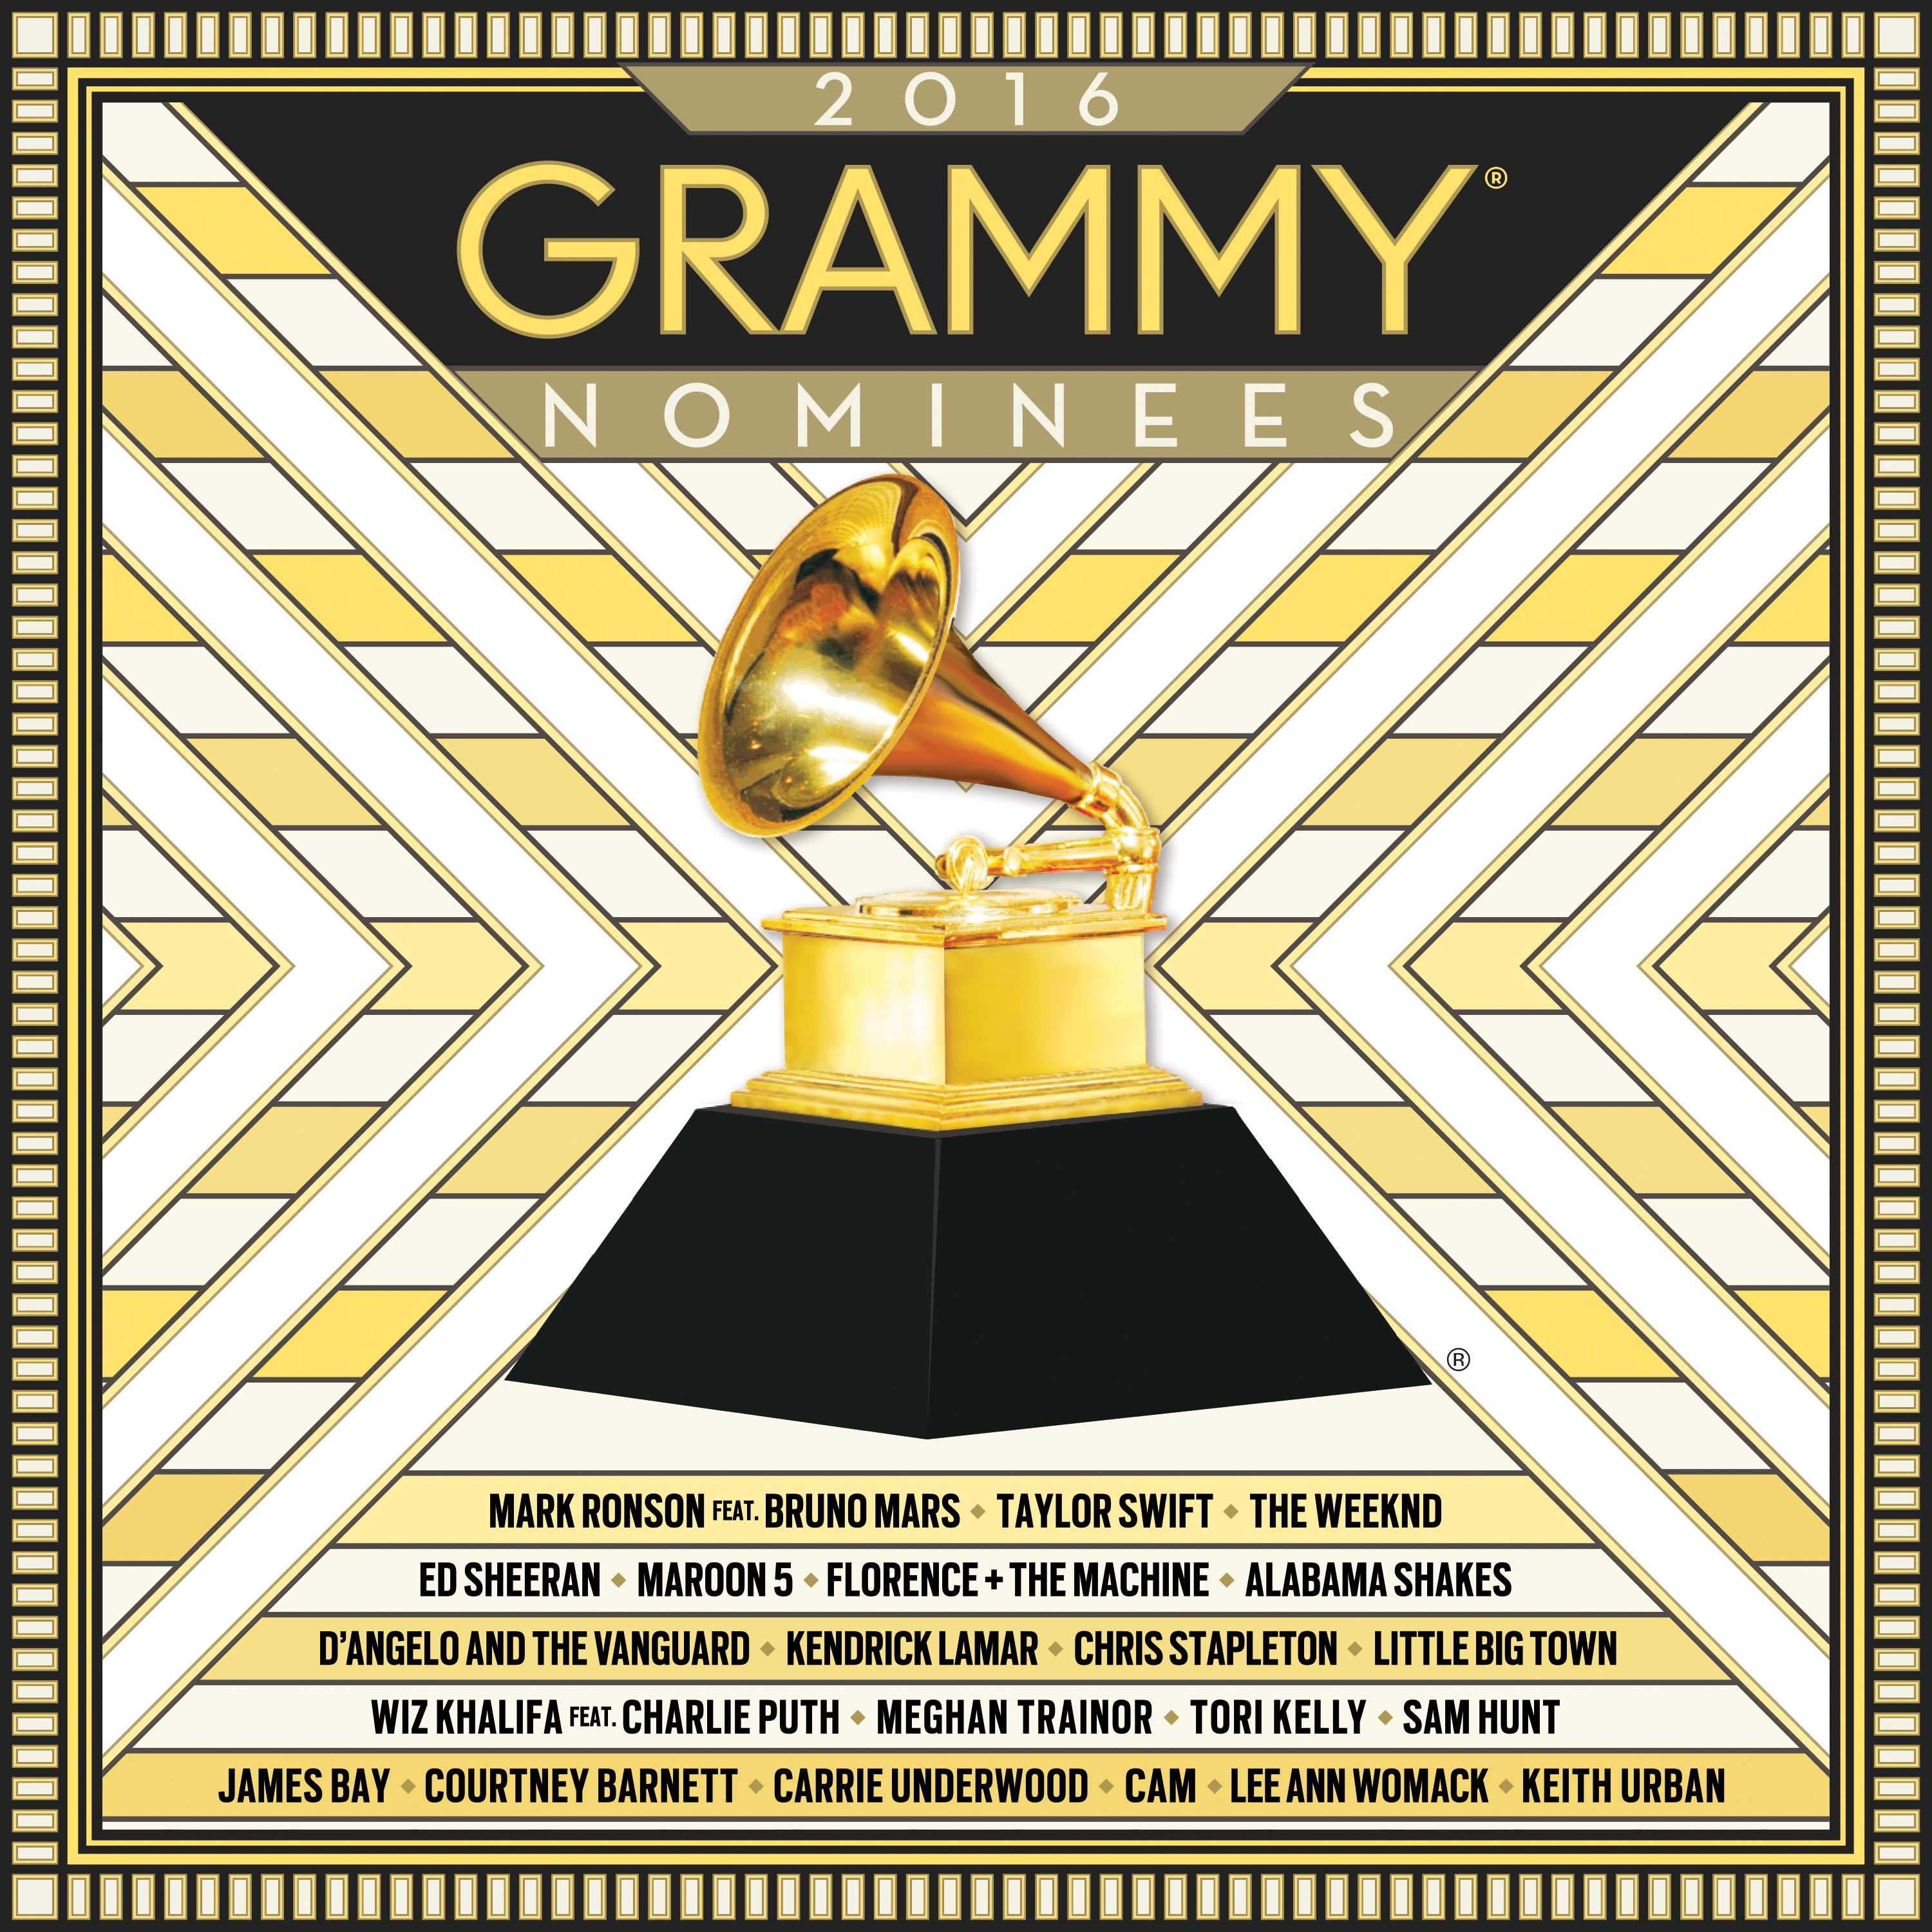 2016 Grammy® Nominees album available now